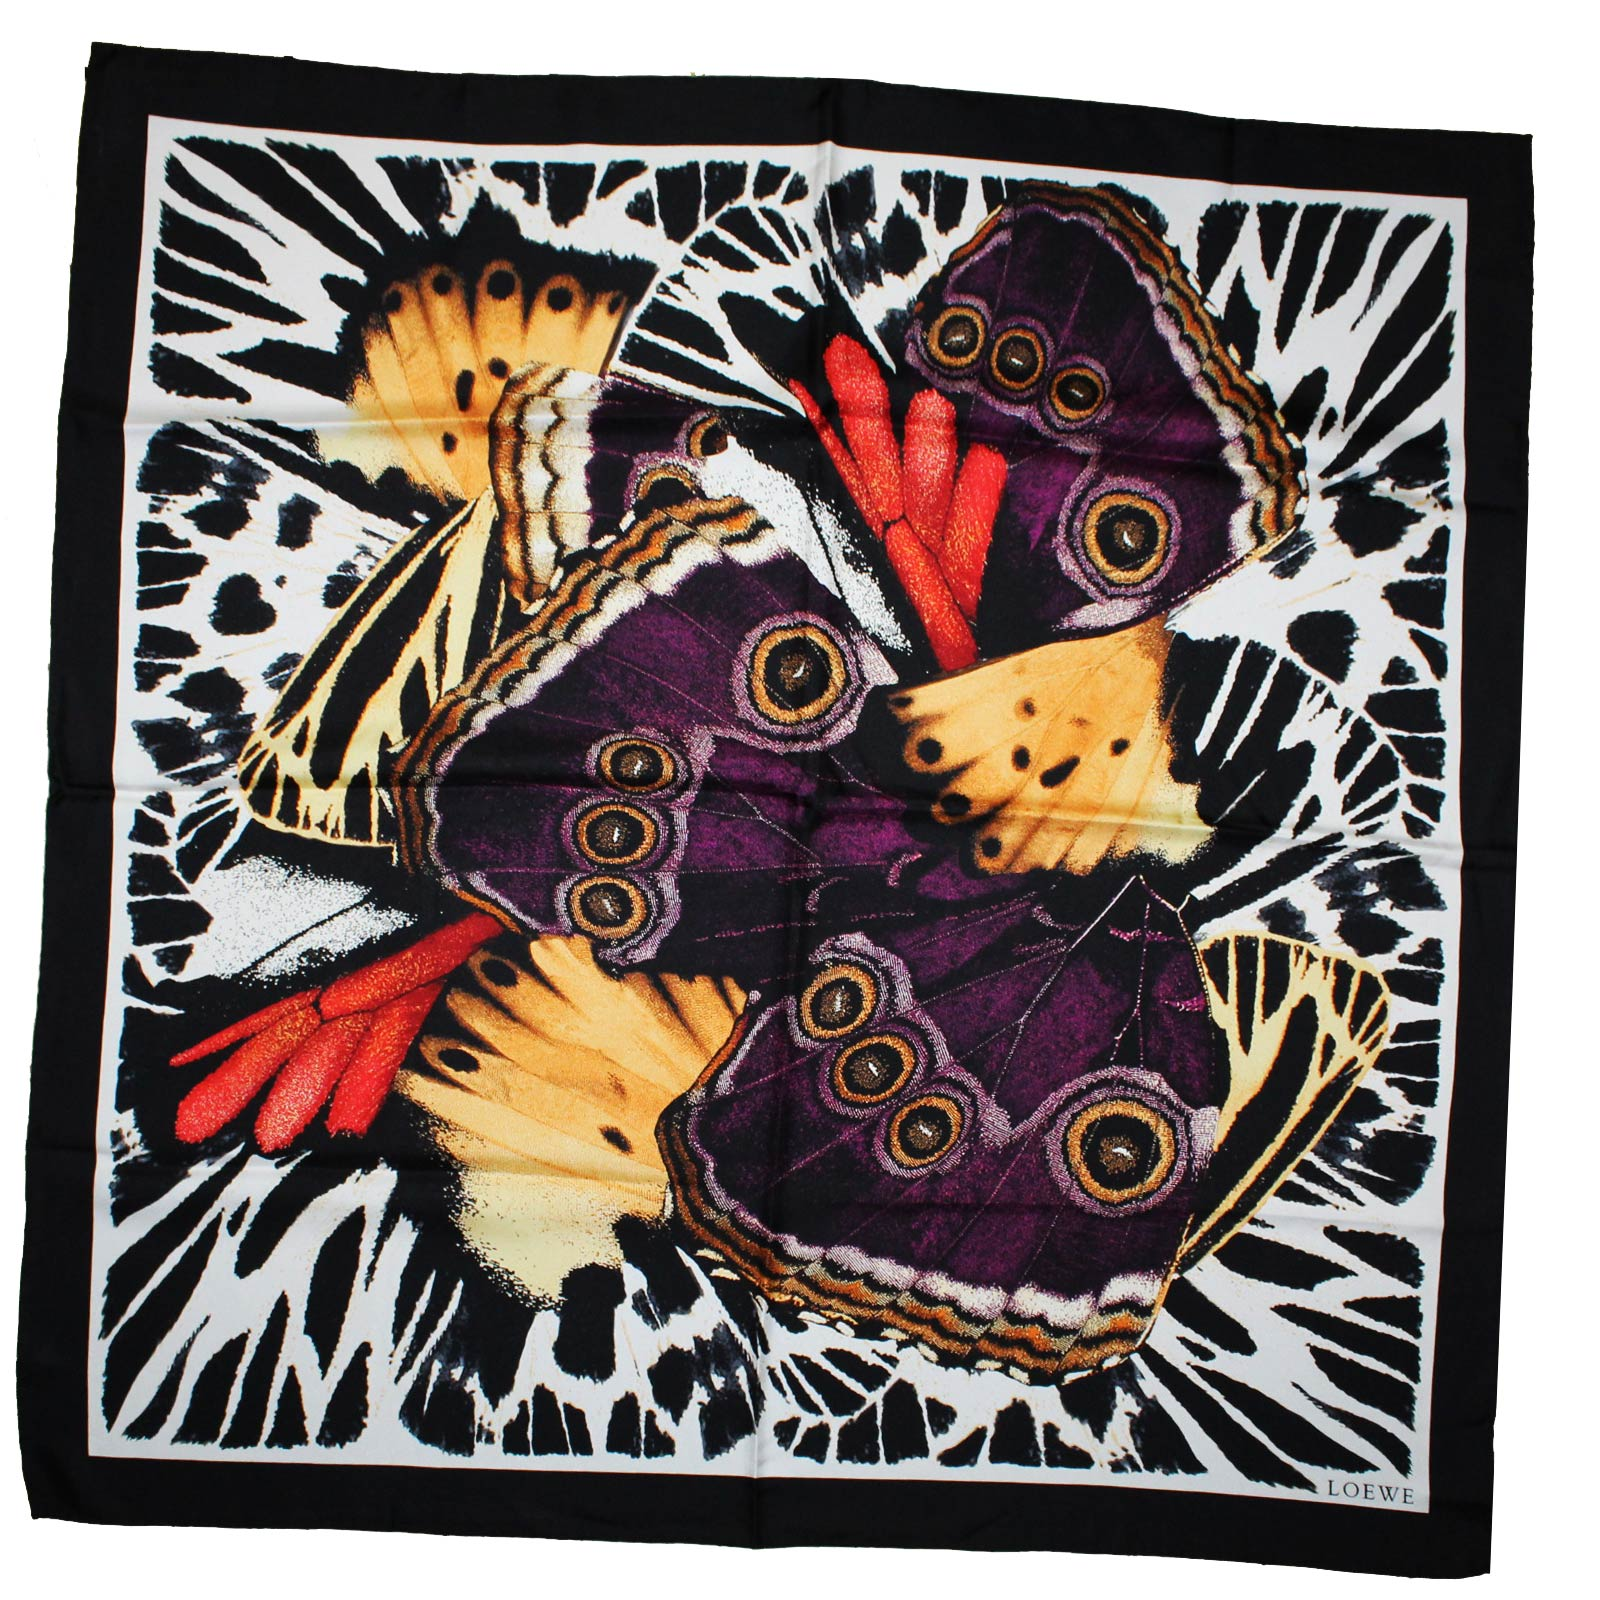 Loewe Silk Scarf Black Purple Butterfly - Large Square Scarf